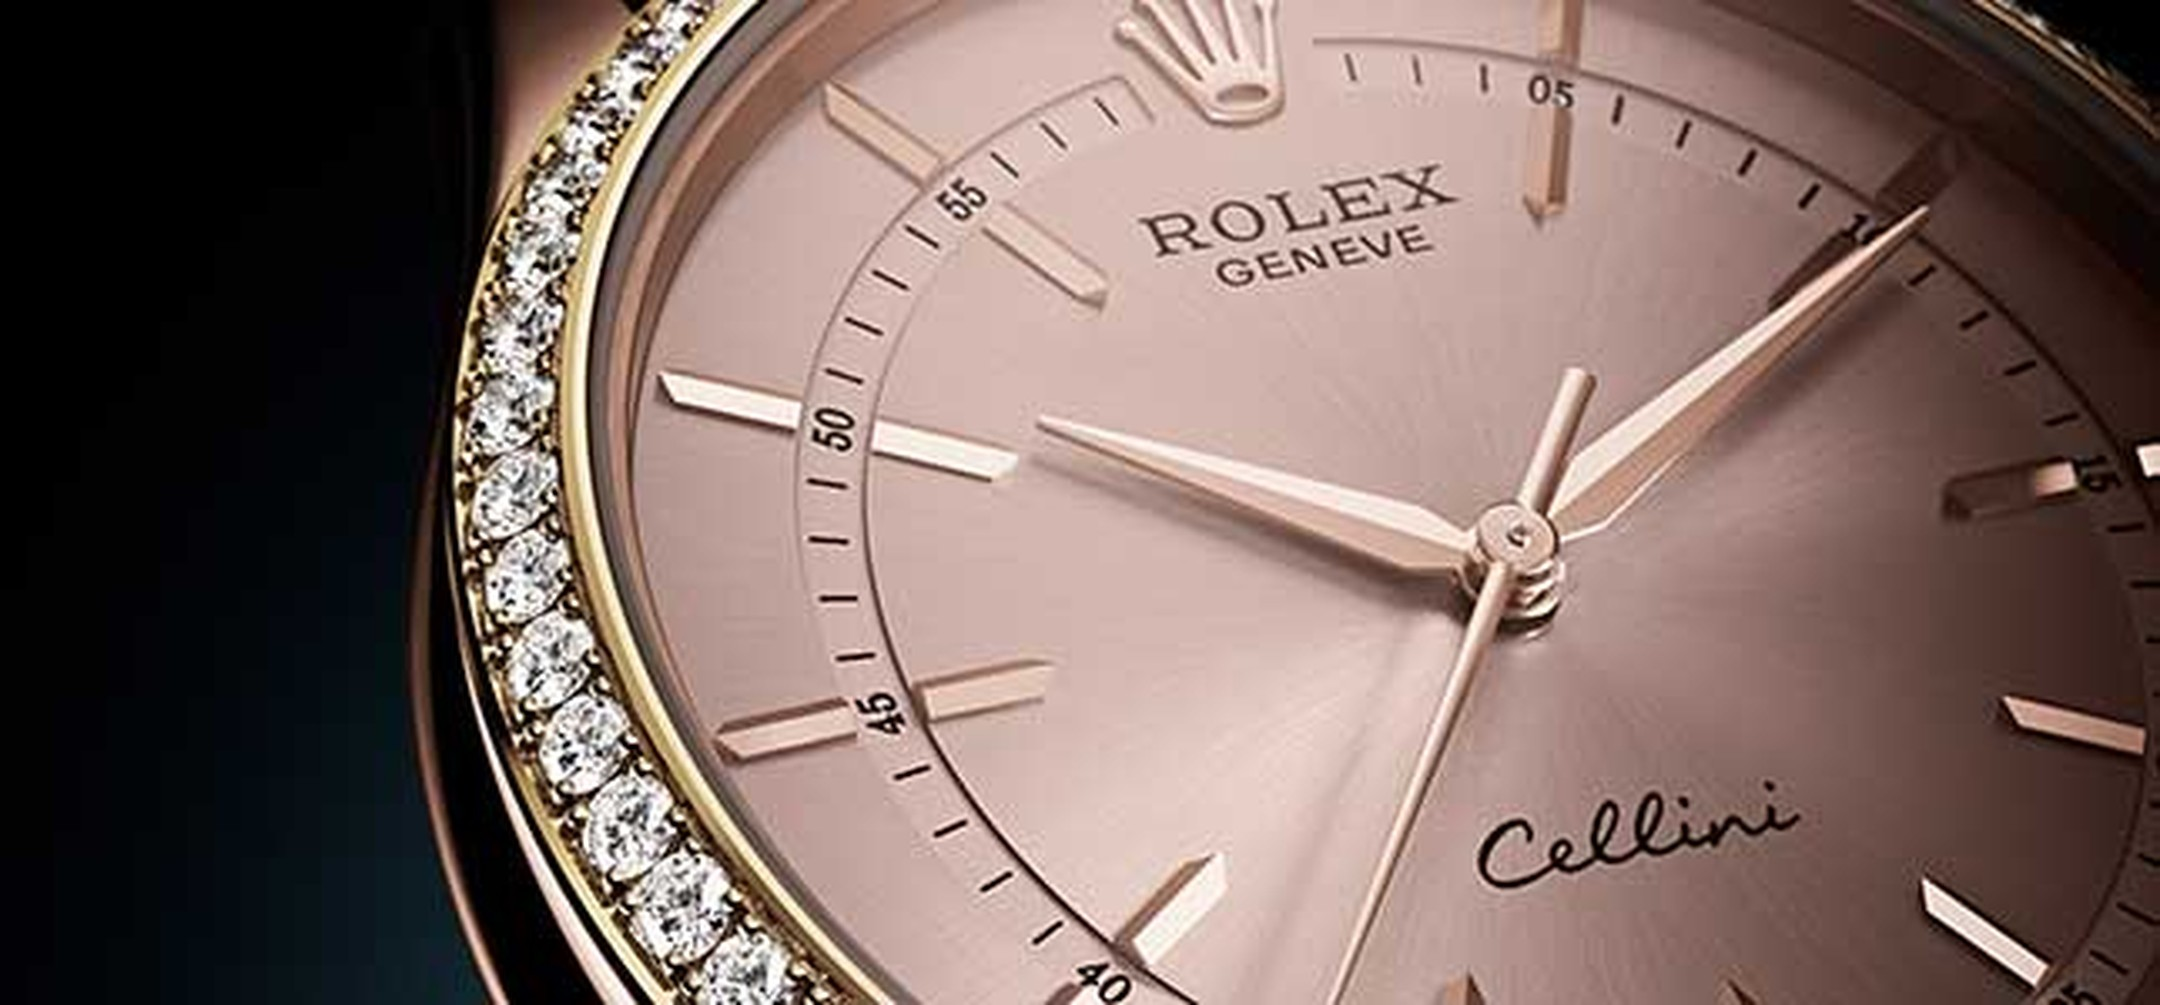 Rolex -Cellini -Time -watch